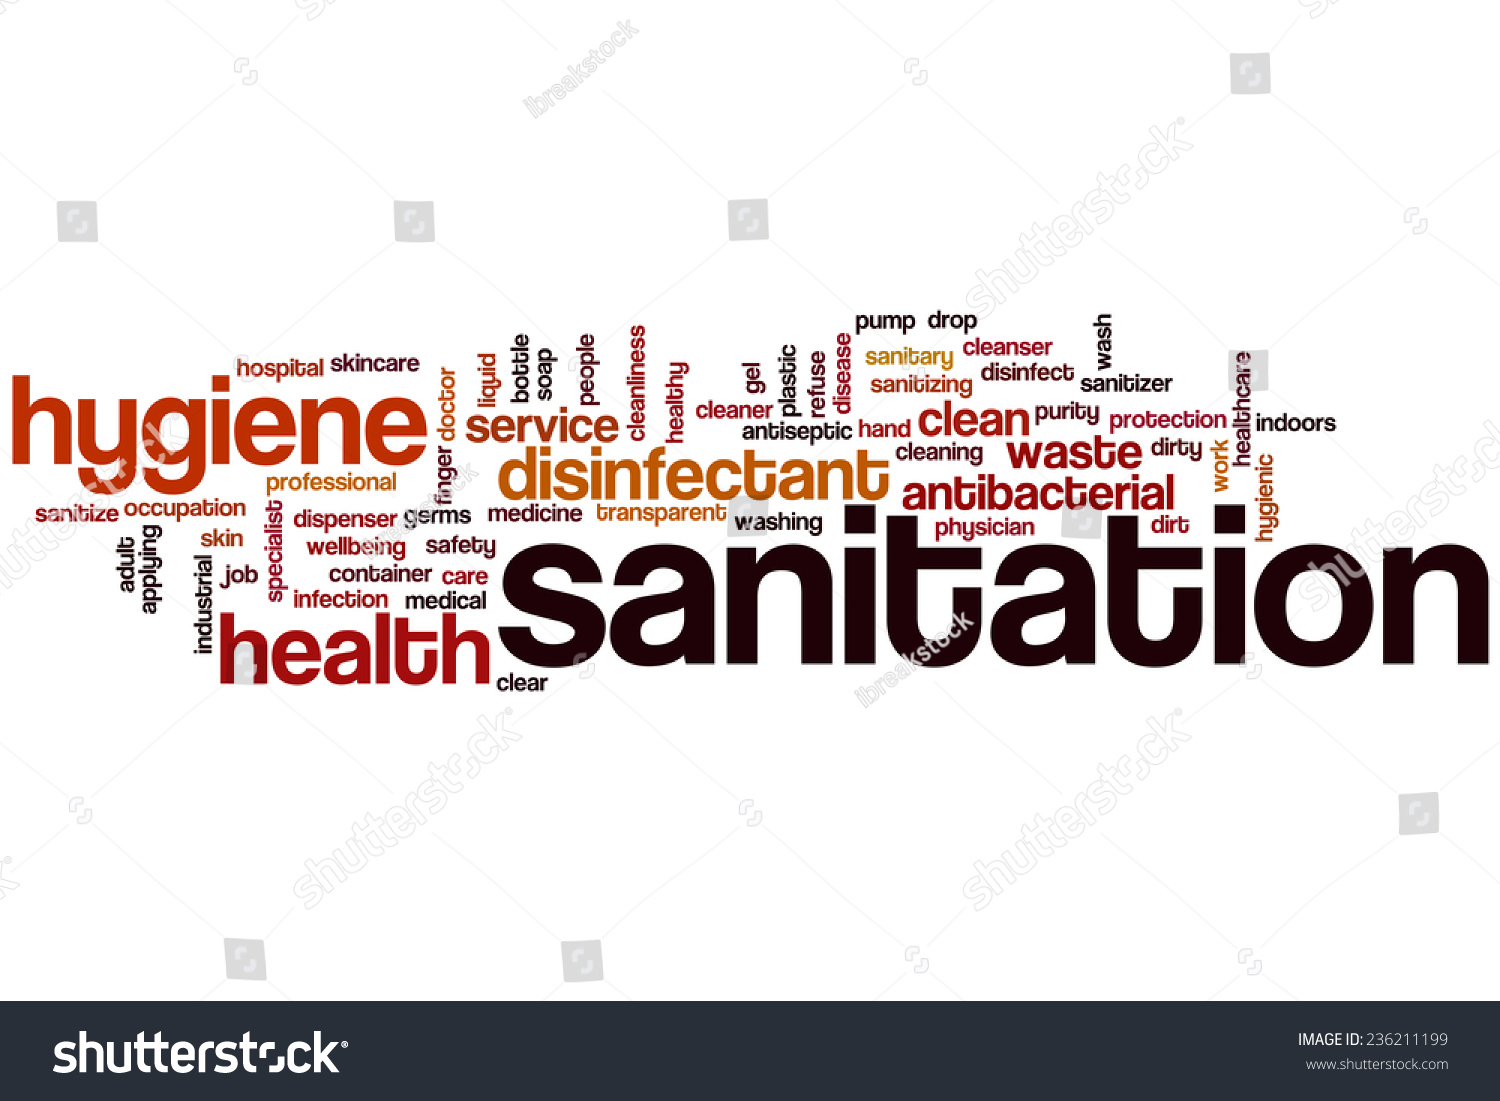 sanitation word cloud concept stock illustration 236211199 sanitation word cloud concept